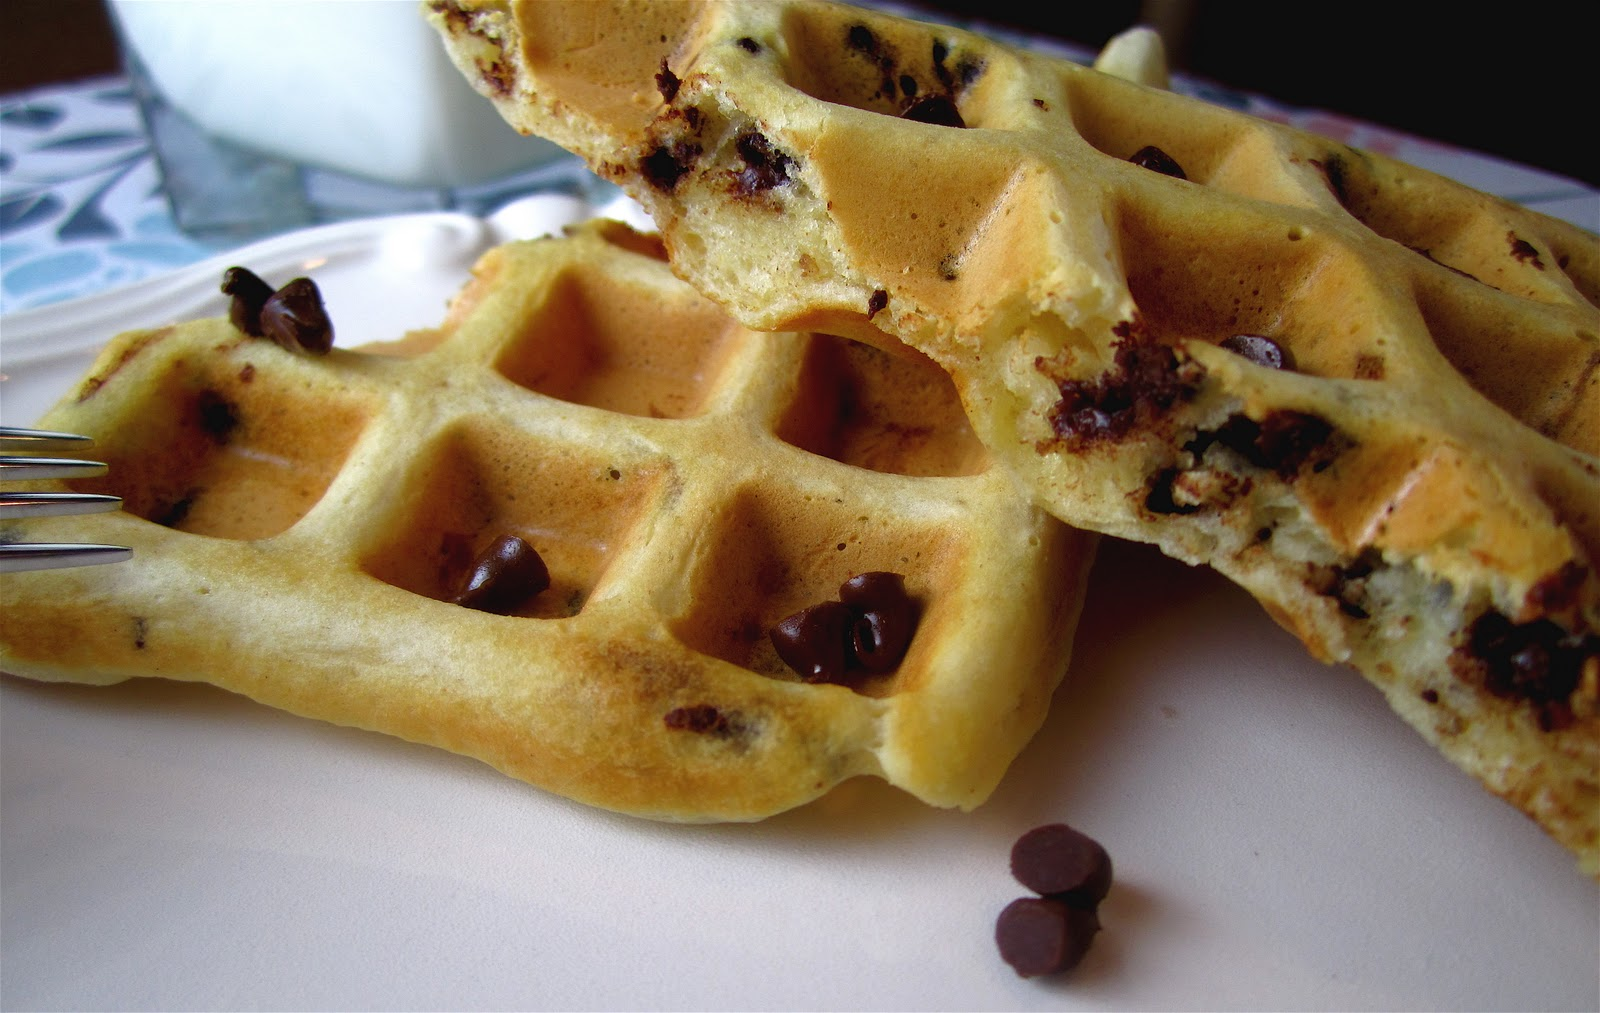 Chocolate Chip Waffles Chocolate chip waffles